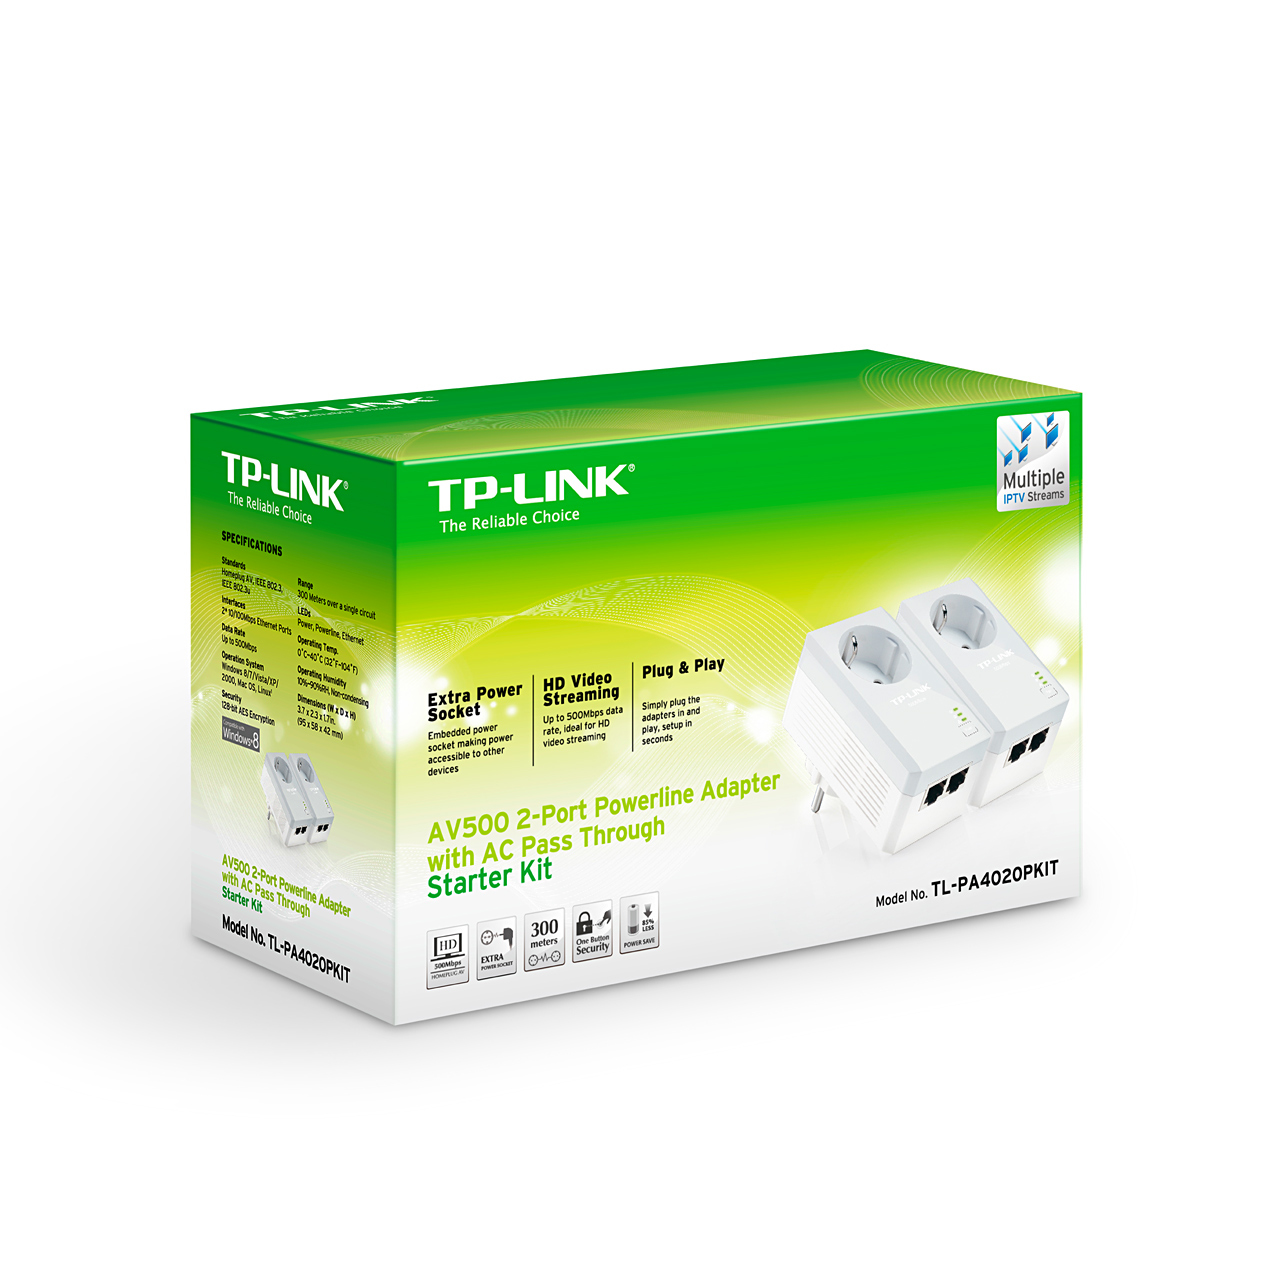 Tp Link Tl Pa4020pkit Ethernet Lan White 2pcs Powerline Network Using Homeplug For Home Media Streaming More Views